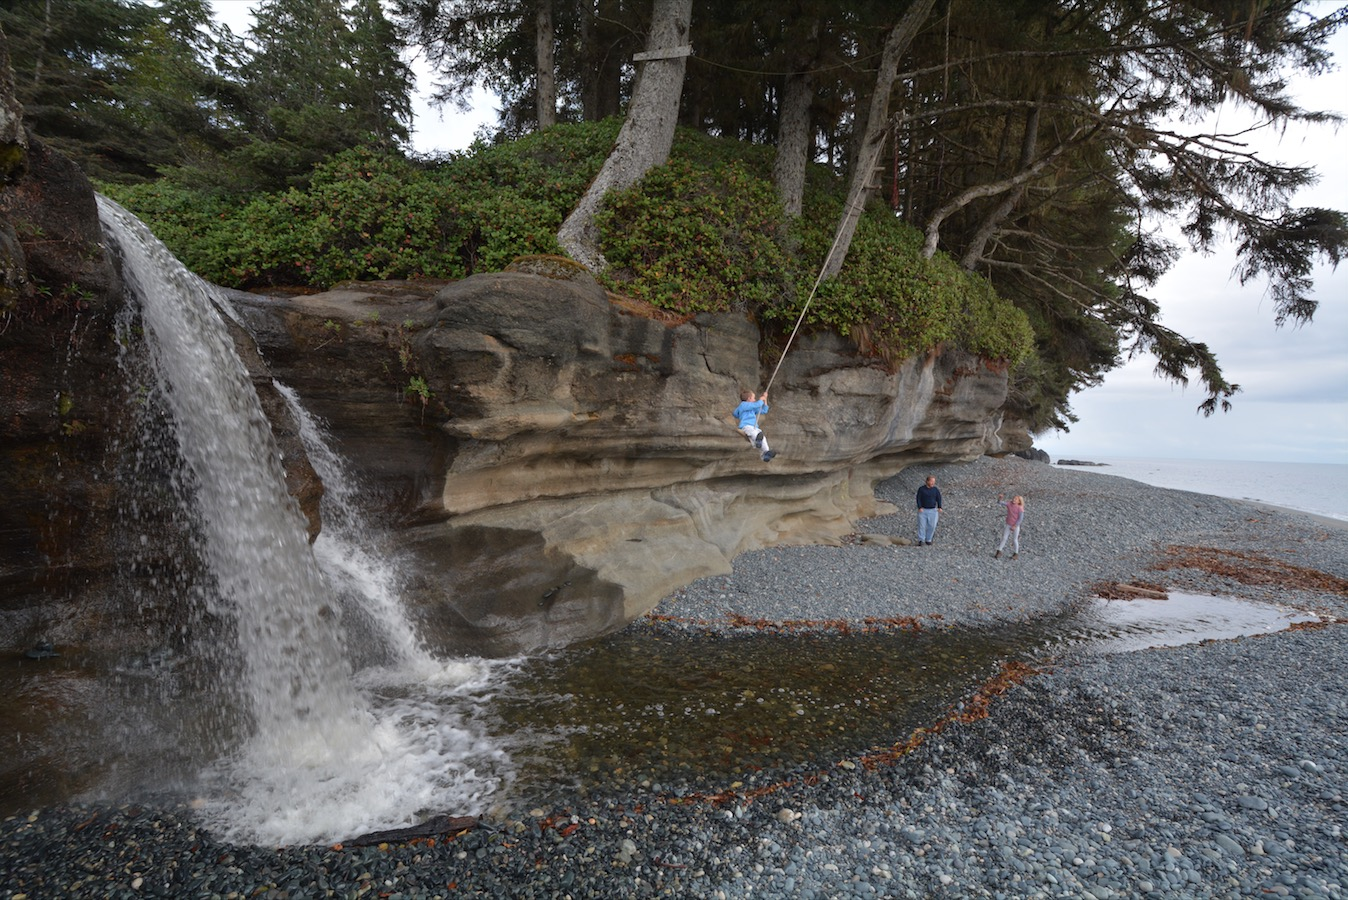 A boy swings on a rope swing near a waterfall along the Pacific coastline.